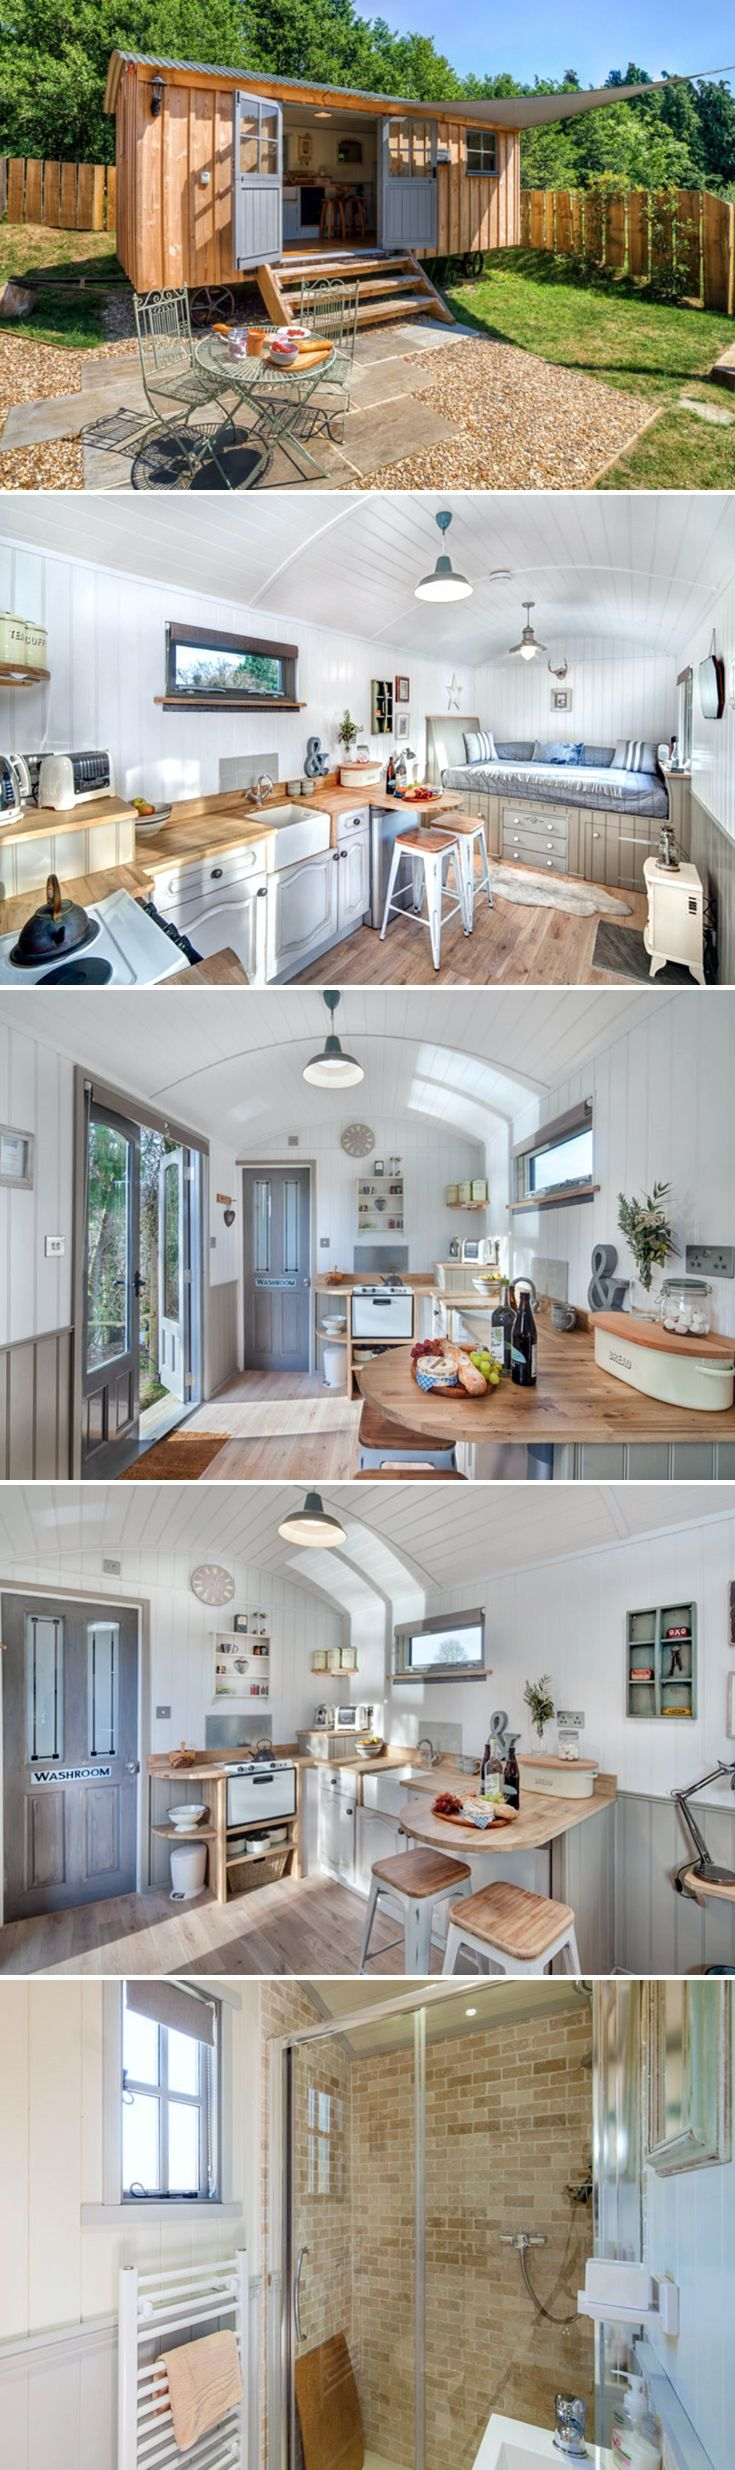 878 best guest house studio images on pinterest backyard cabin